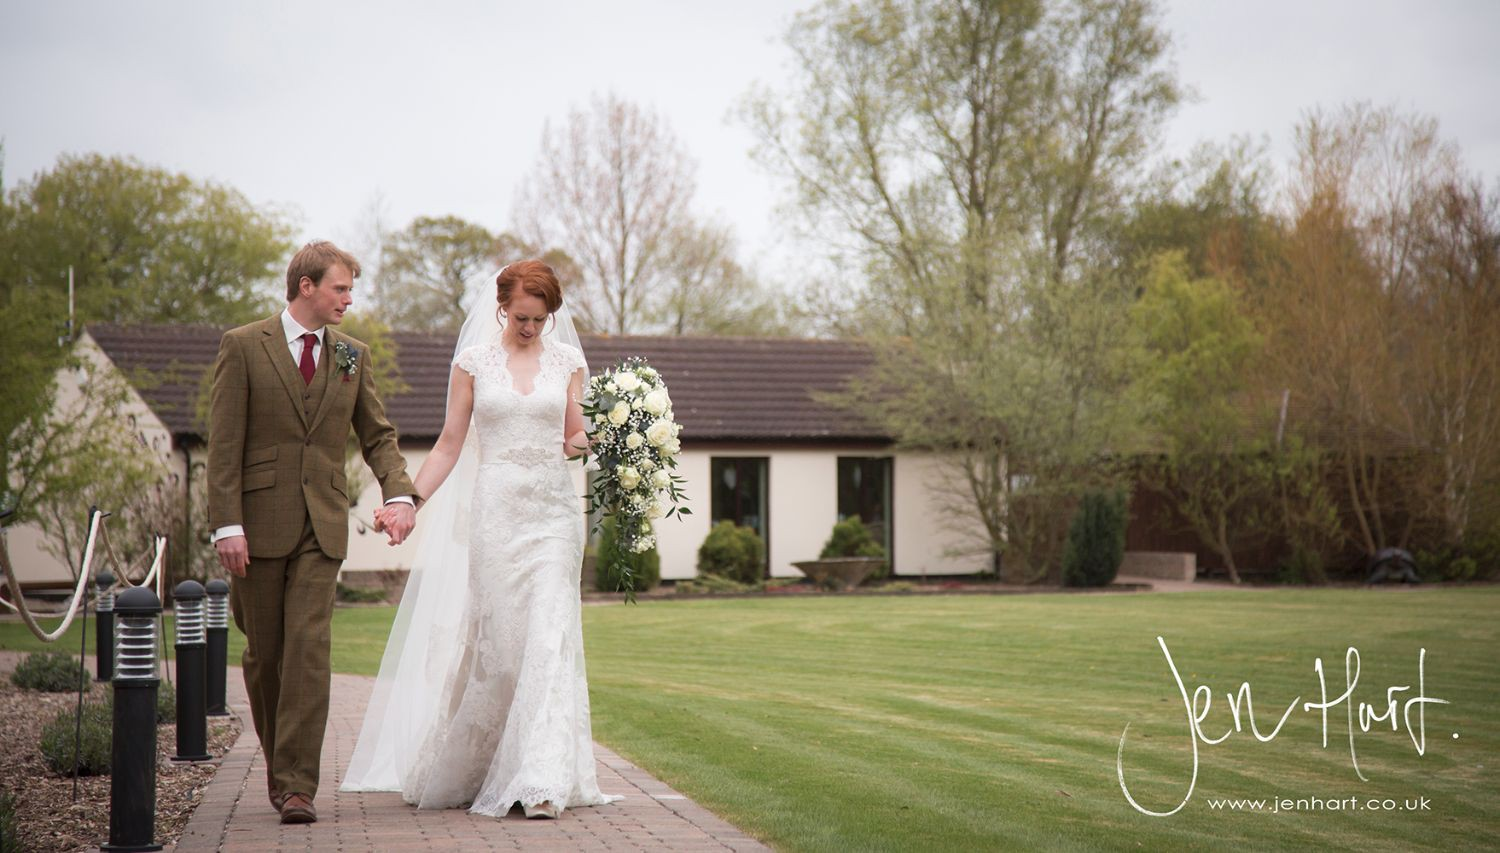 Photograph-Wedding-Whinstone-View_02May15_171